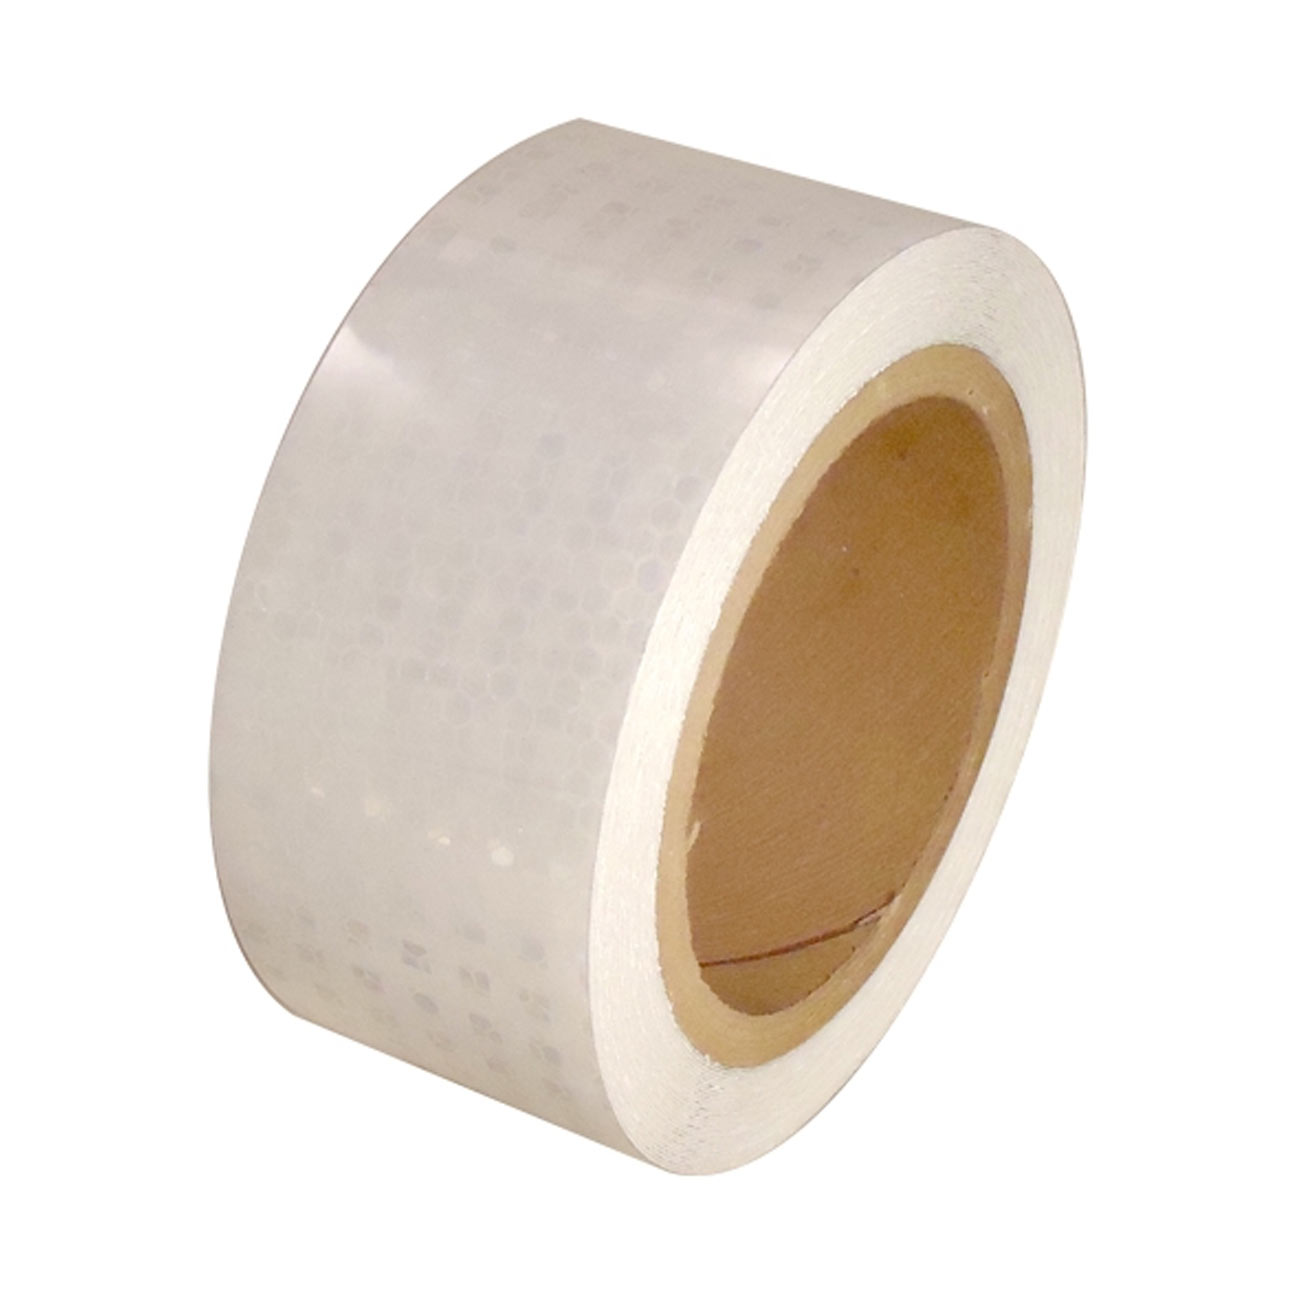 Low Vision Reflective Adhesive Tape- White